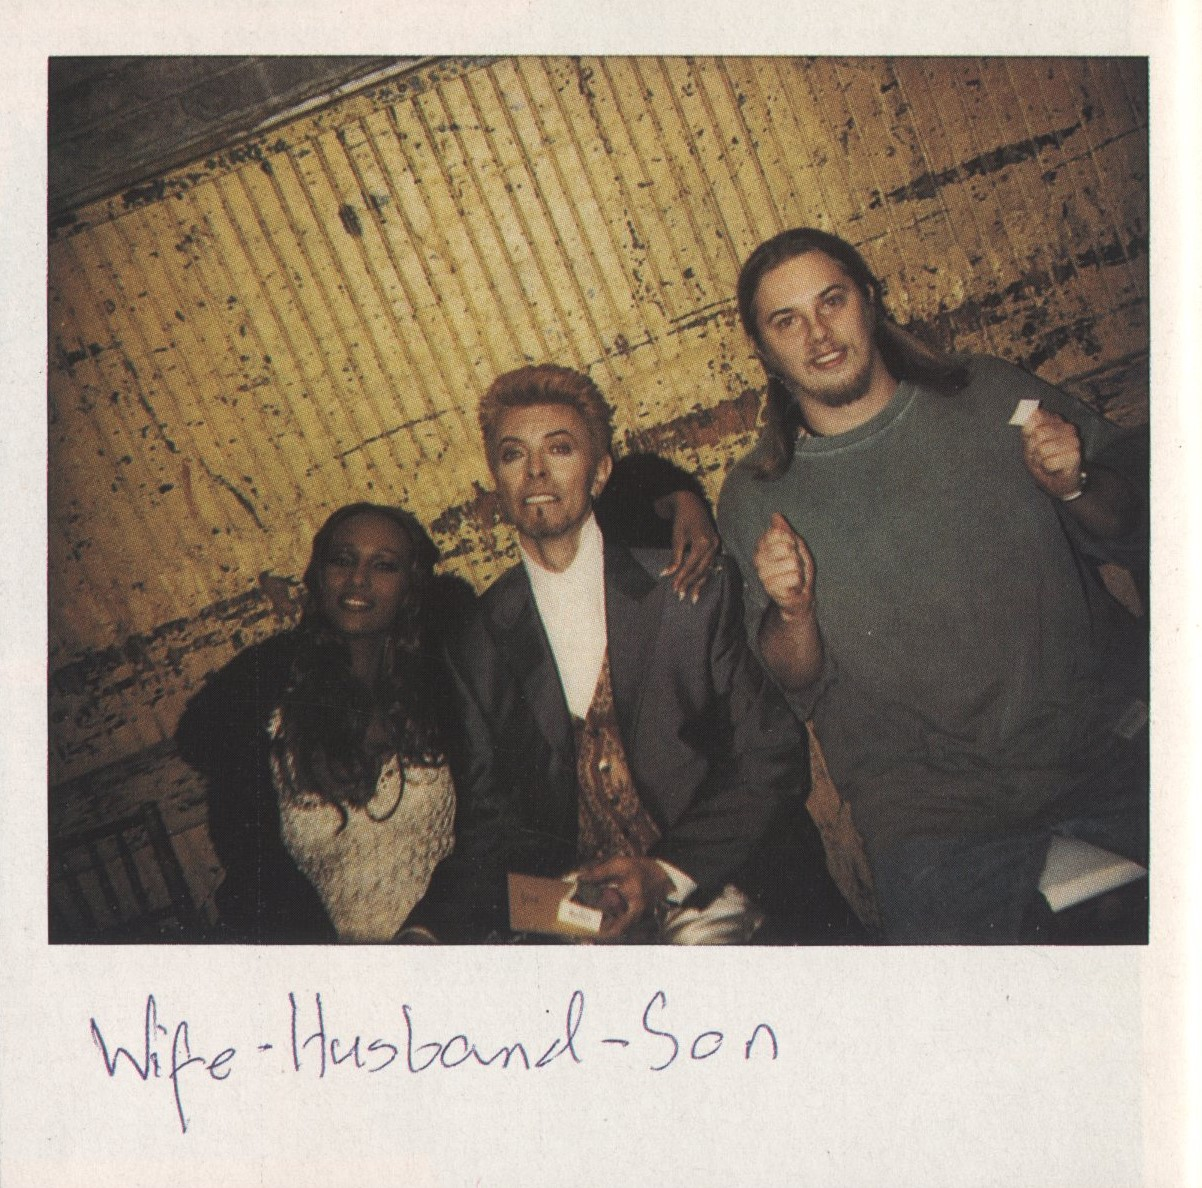 IMAN, DAVID BOWIE AND DUNCAN JONES DAVID BOWIE'S 50TH BIRTHDAY PERSONAL POLAROID DIARY DAZED & CONFUSED ISSUE #28